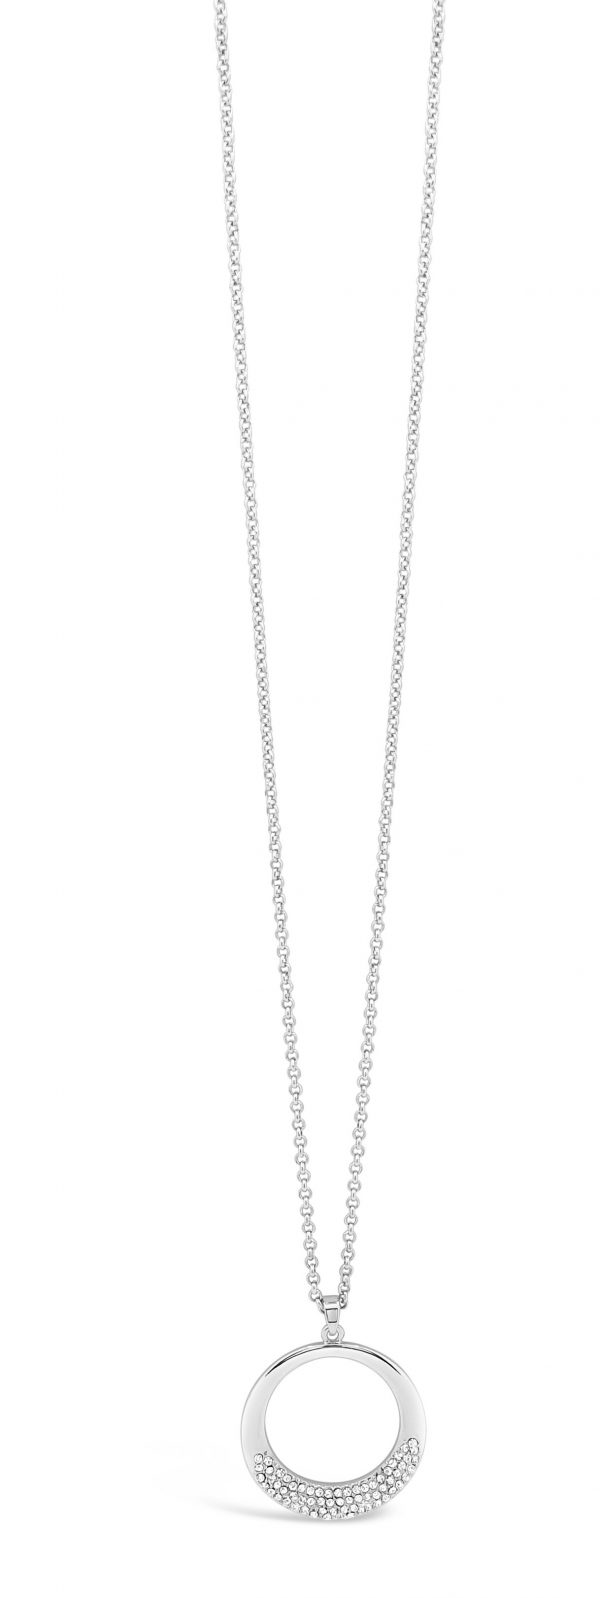 ABSOLUTE N2098SL SILVER NECKLACE